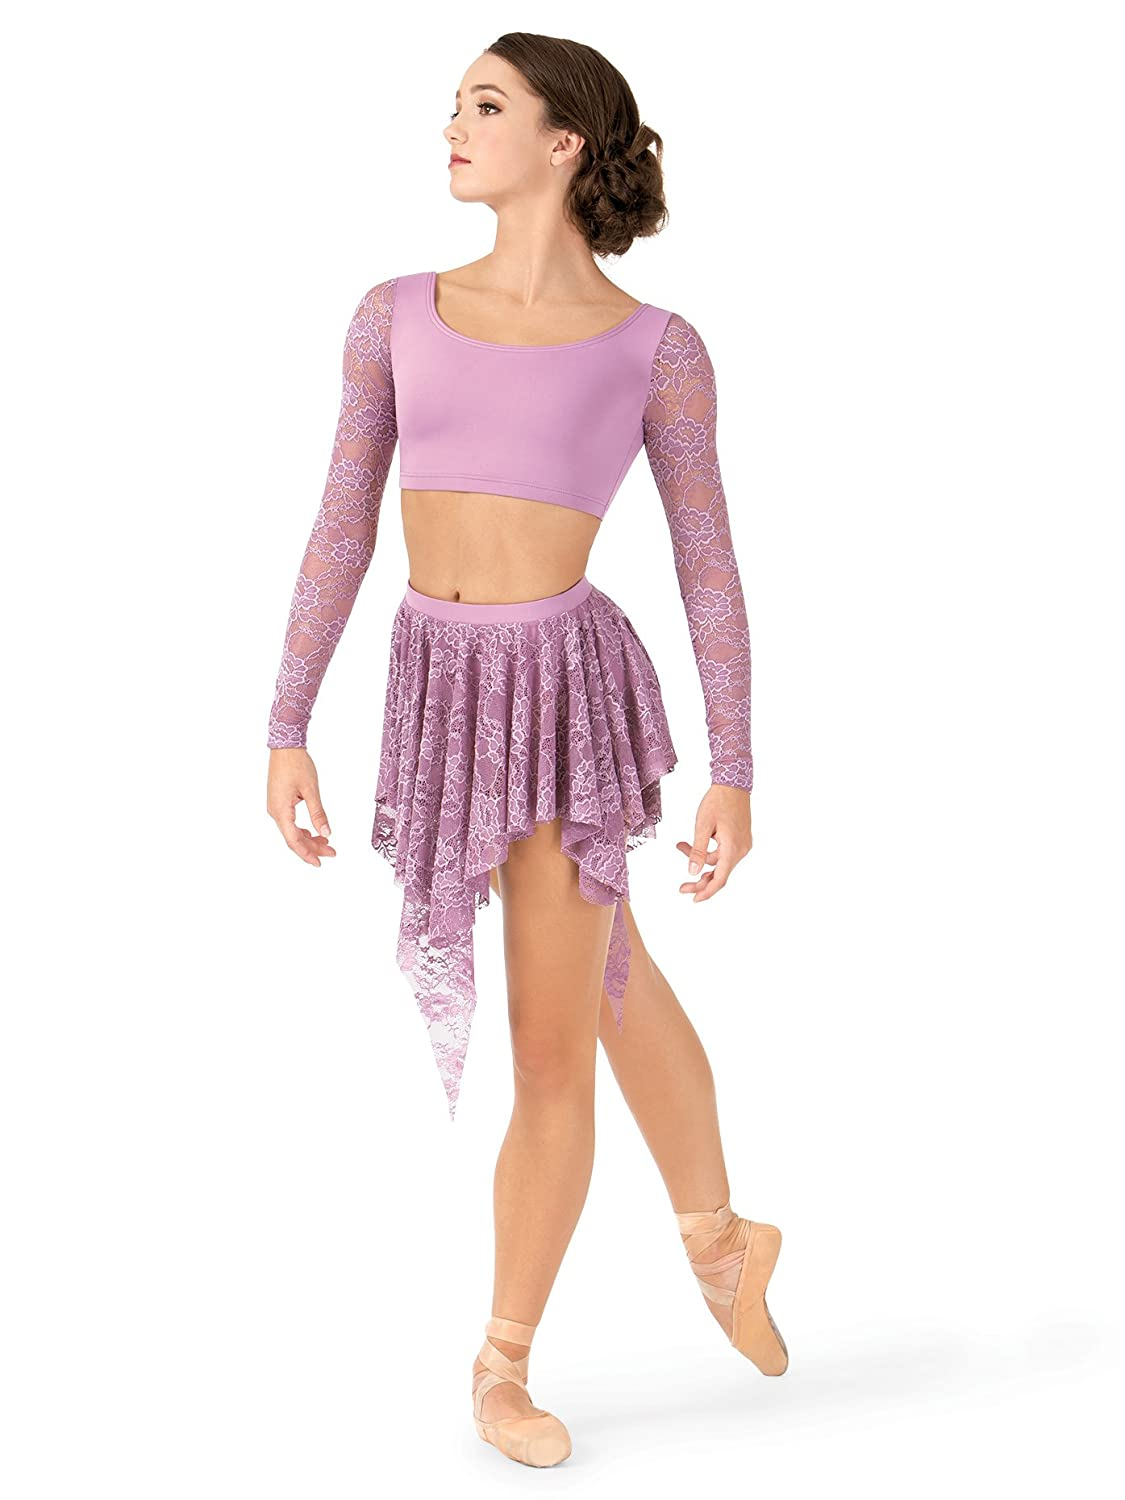 Body Wrappers Adult Uneven Hem Drapey Lace Dance Skirt, LC9109